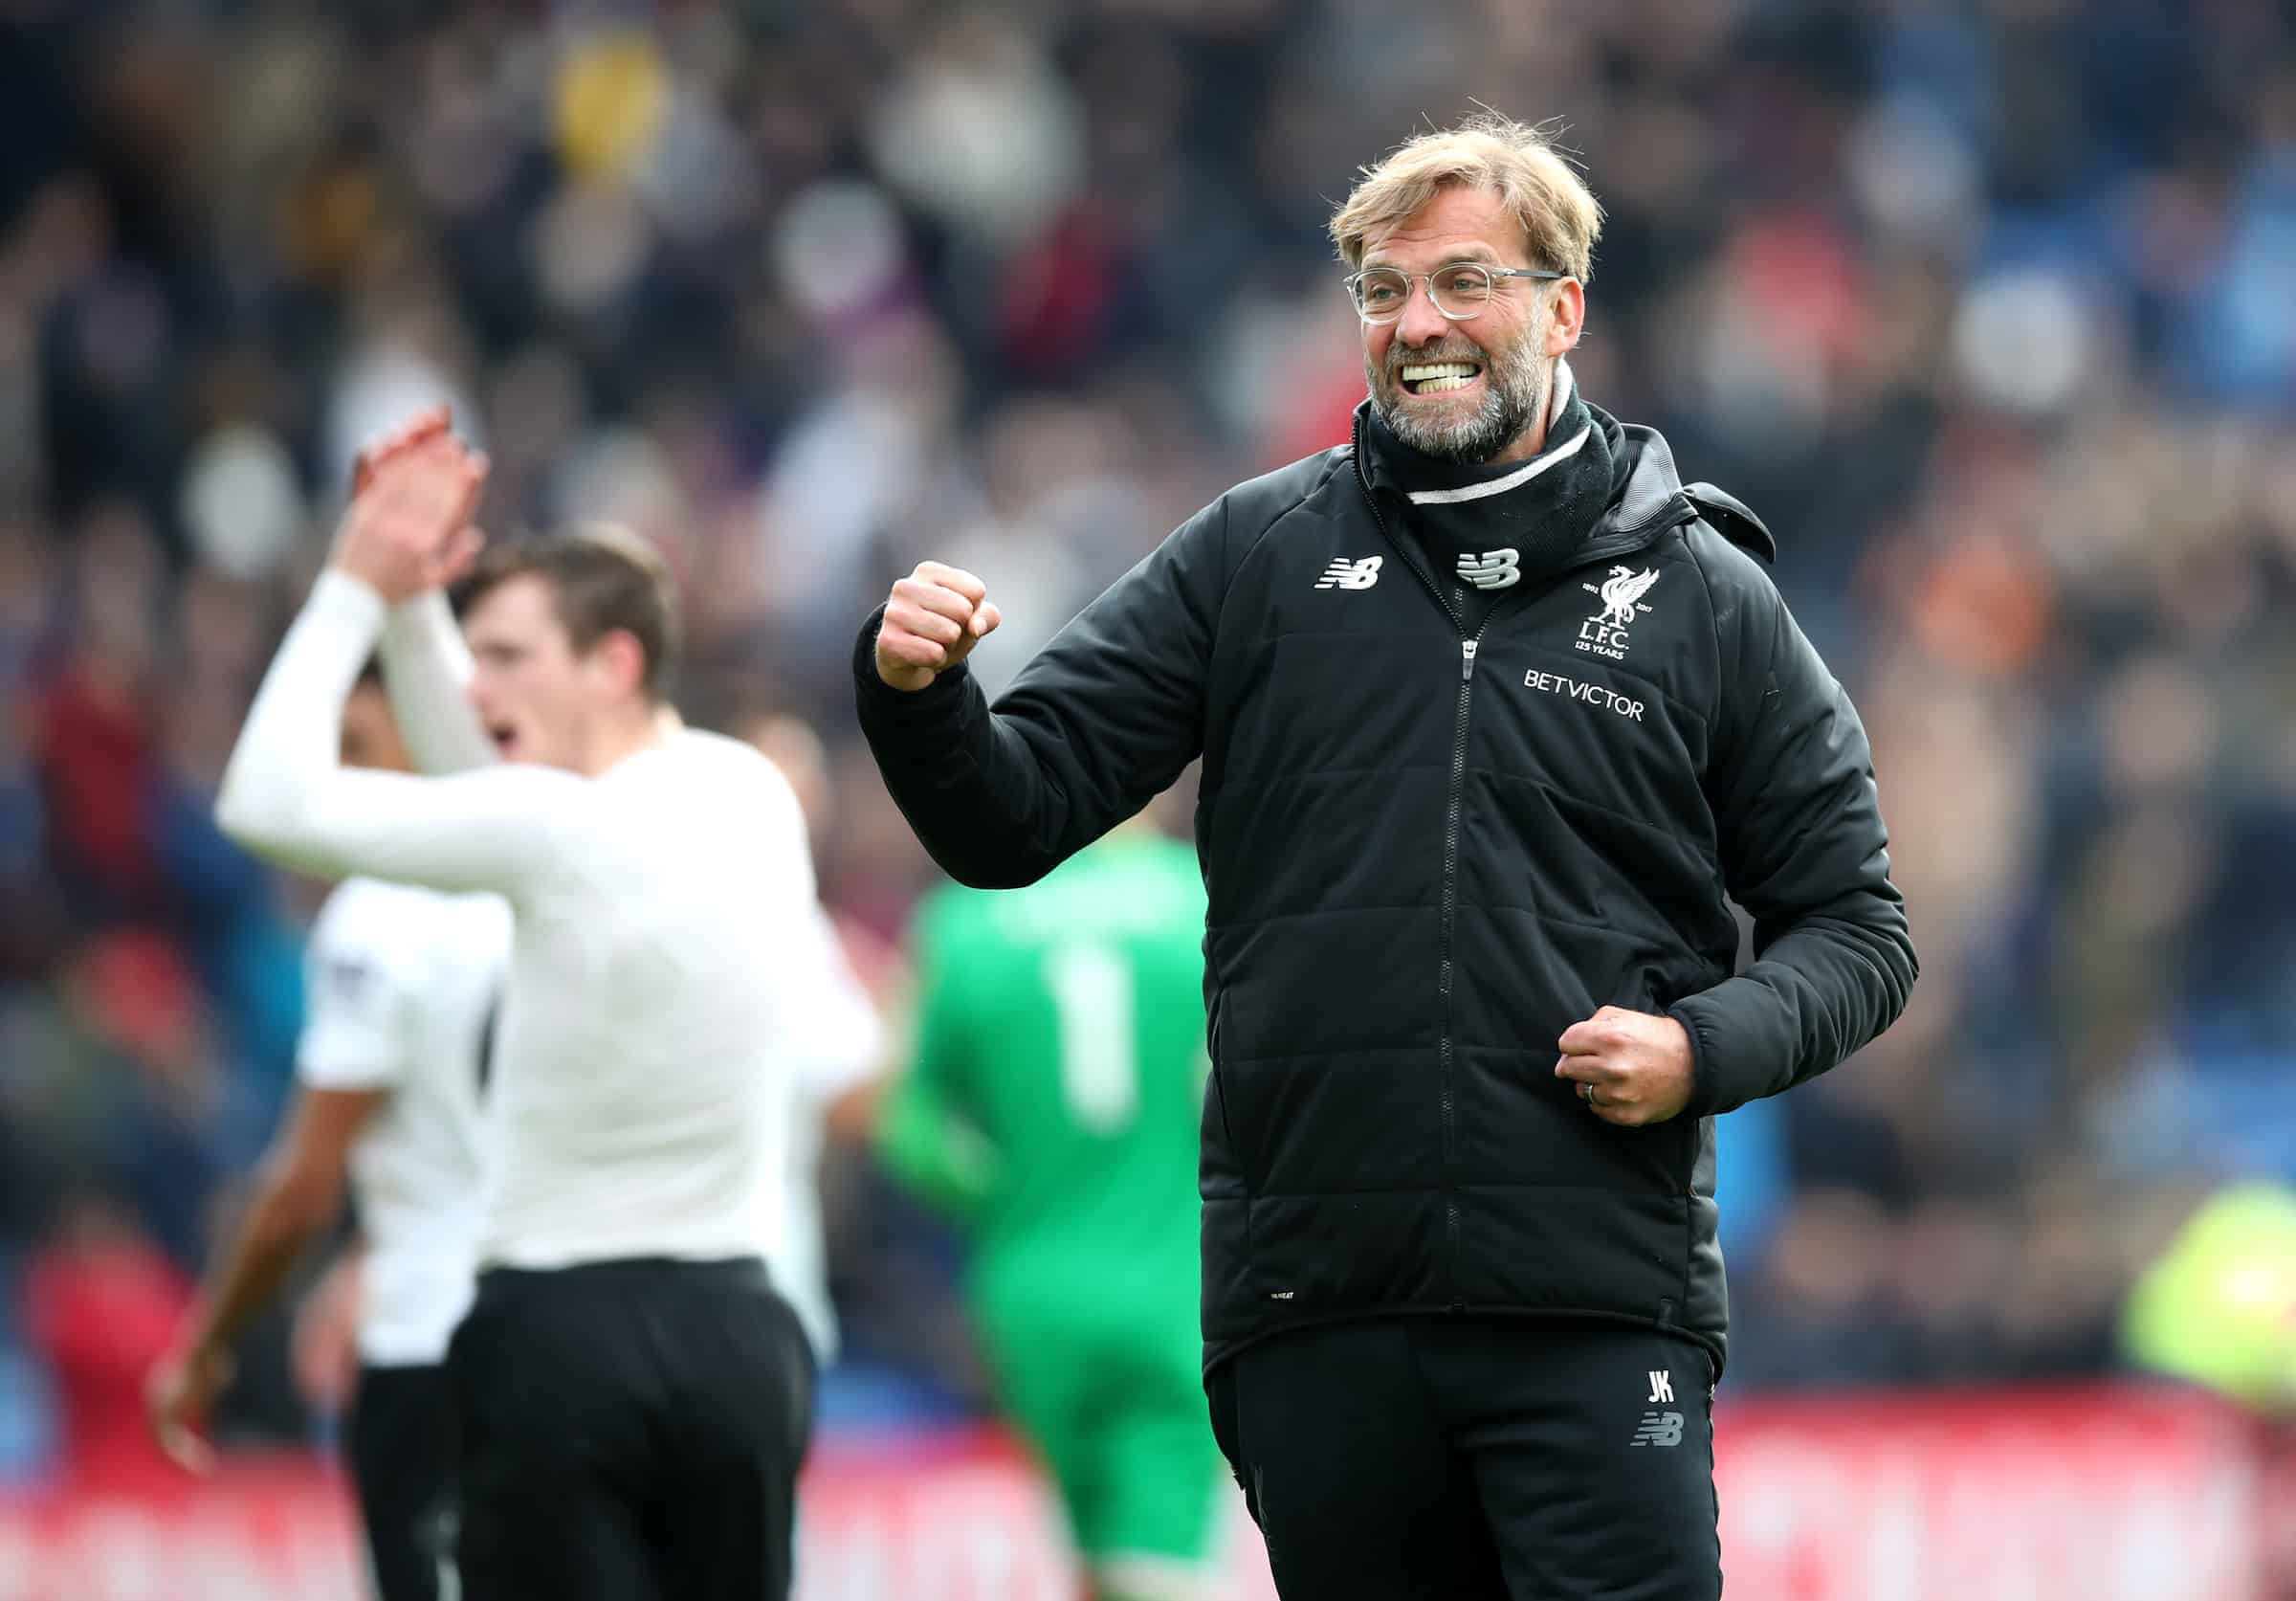 Liverpool manager Jurgen Klopp celebrates after the Premier League match at Selhurst Park, London. ( Adam Davy/PA Wire/PA Images)